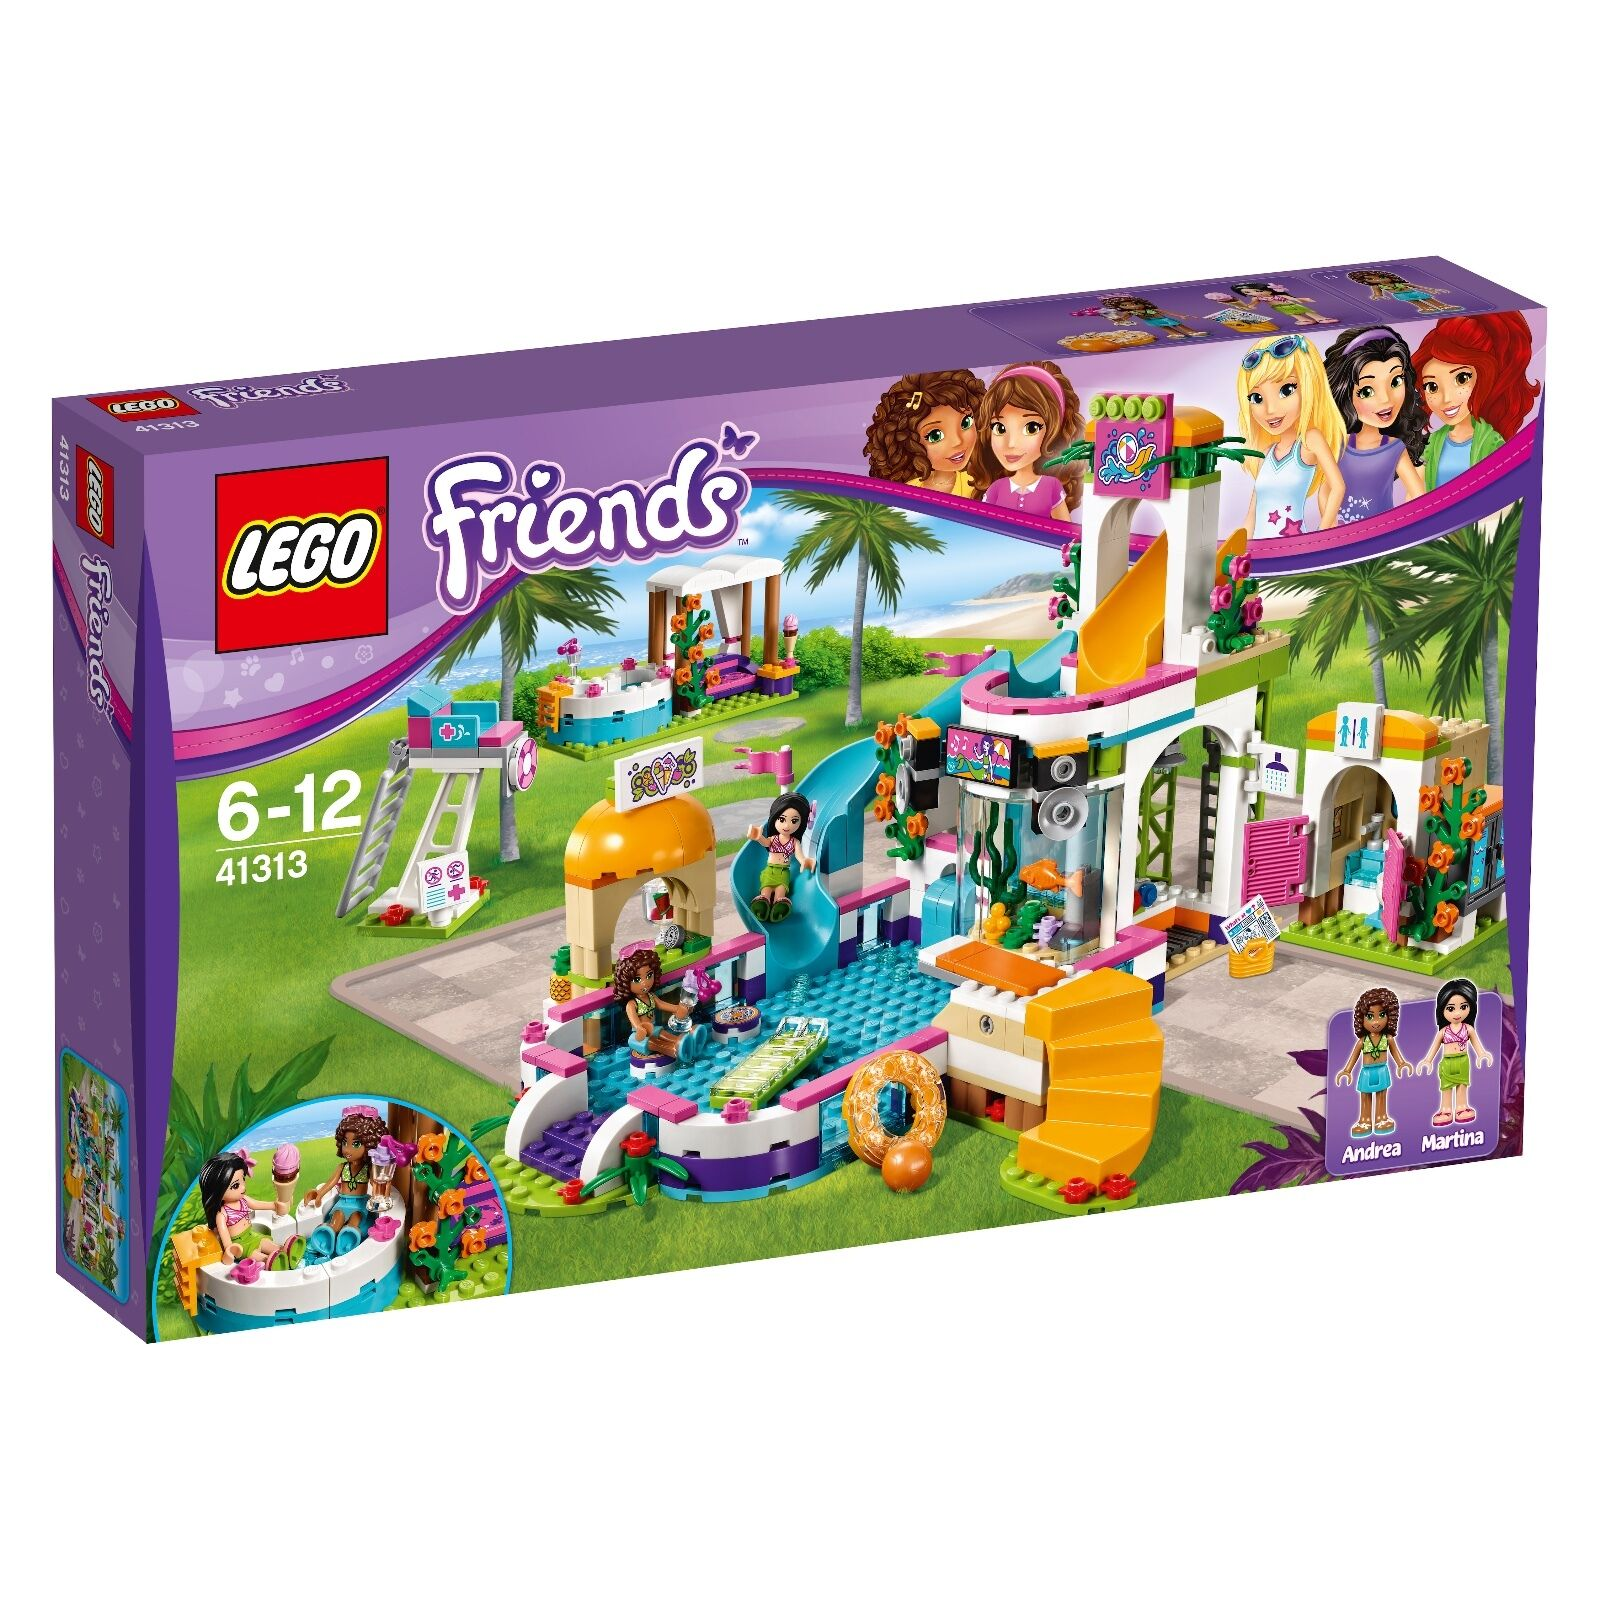 LEGO ® Friends 41313 Heartlake piscina all'aperto NUOVO OVP _ heartlakle Summer POOL NEW MISB